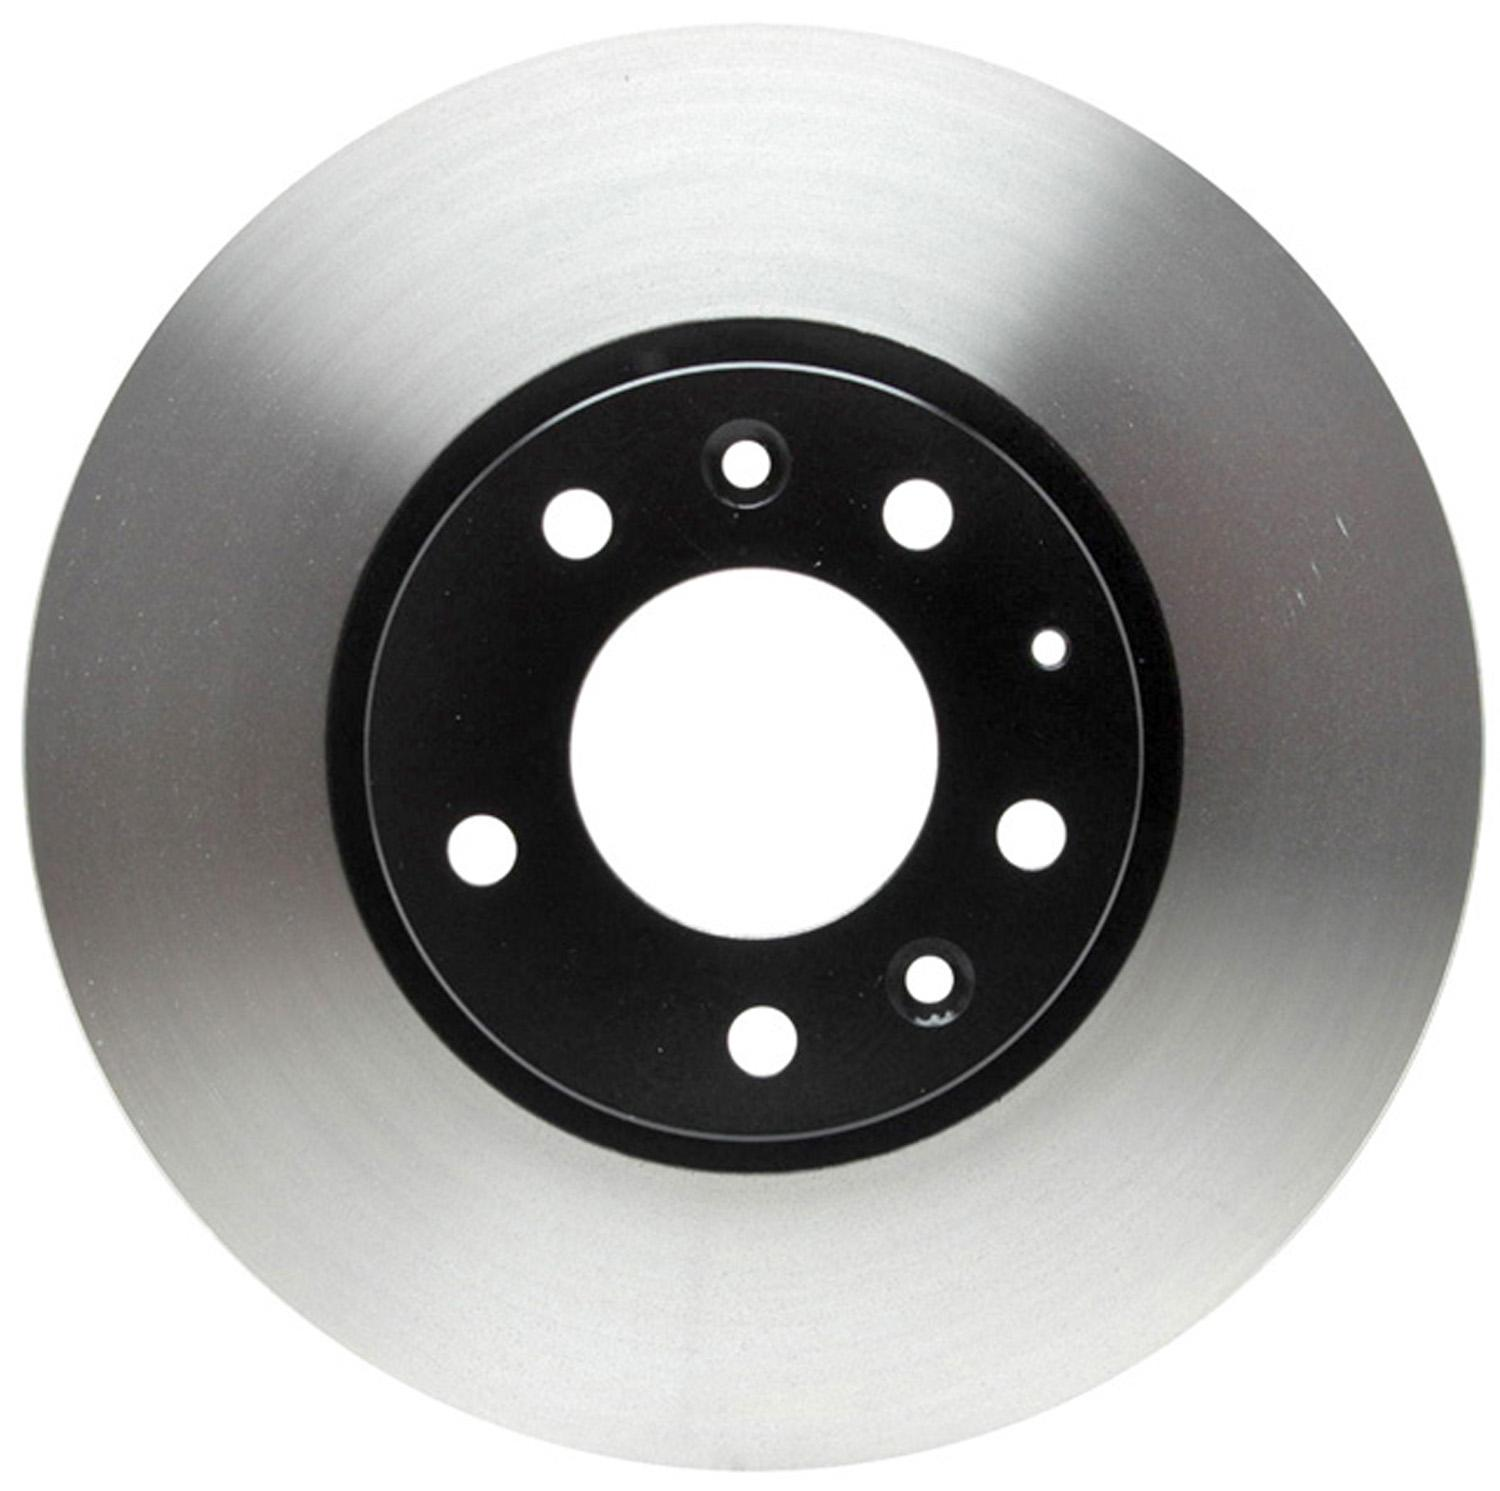 ACDELCO PROFESSIONAL BRAKES - Disc Brake Rotor (Front) - ADU 18A2351